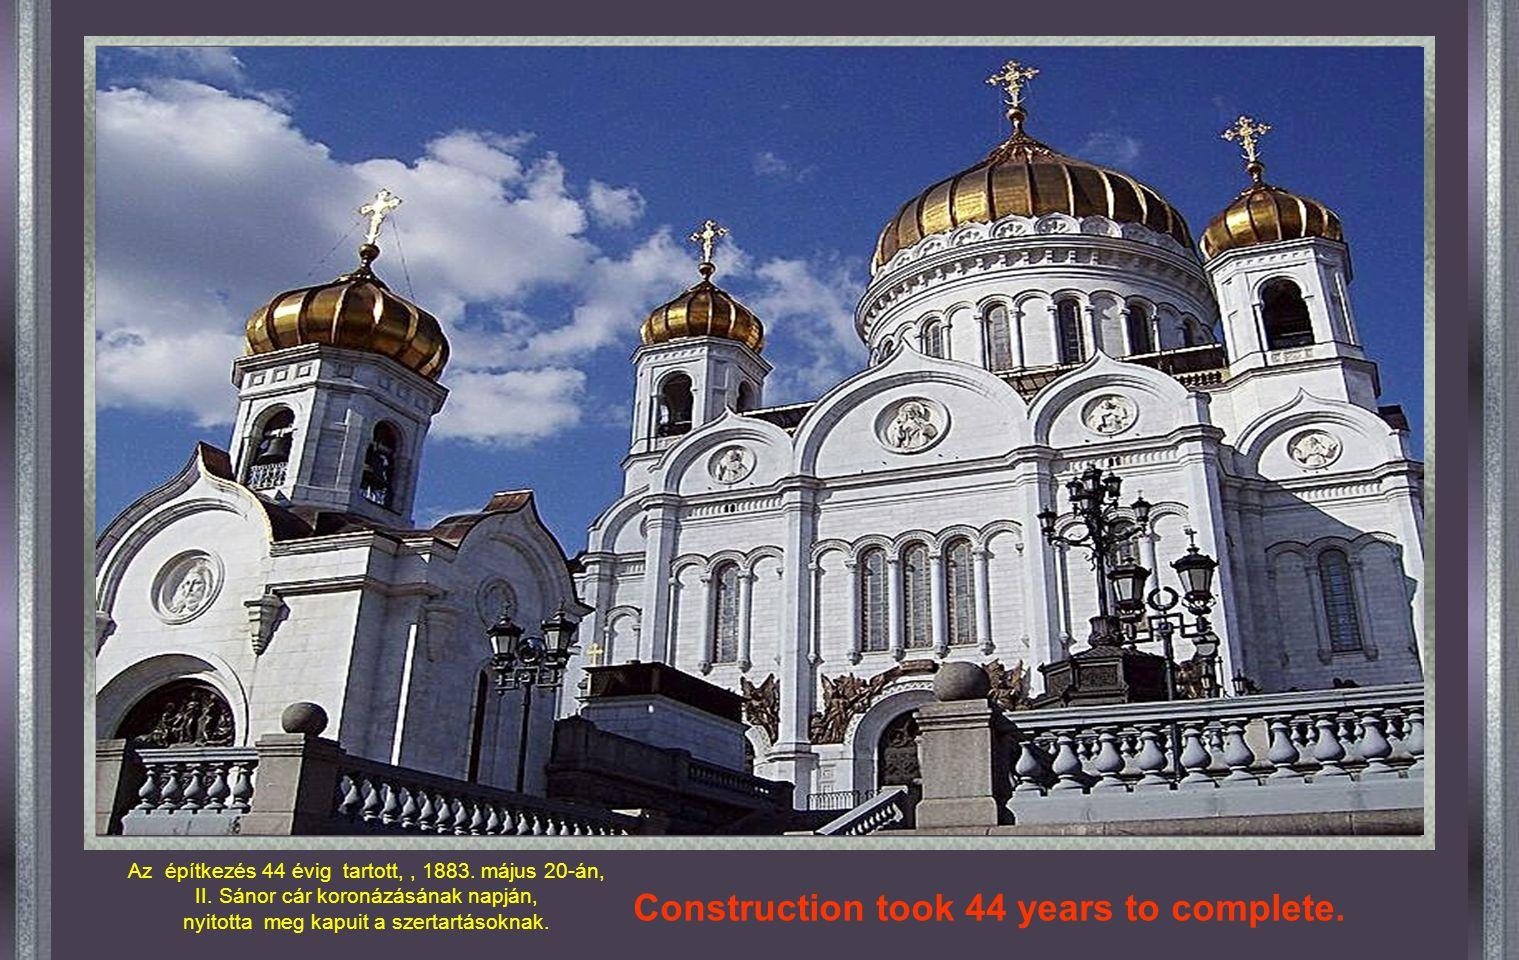 Construction took 44 years to complete.